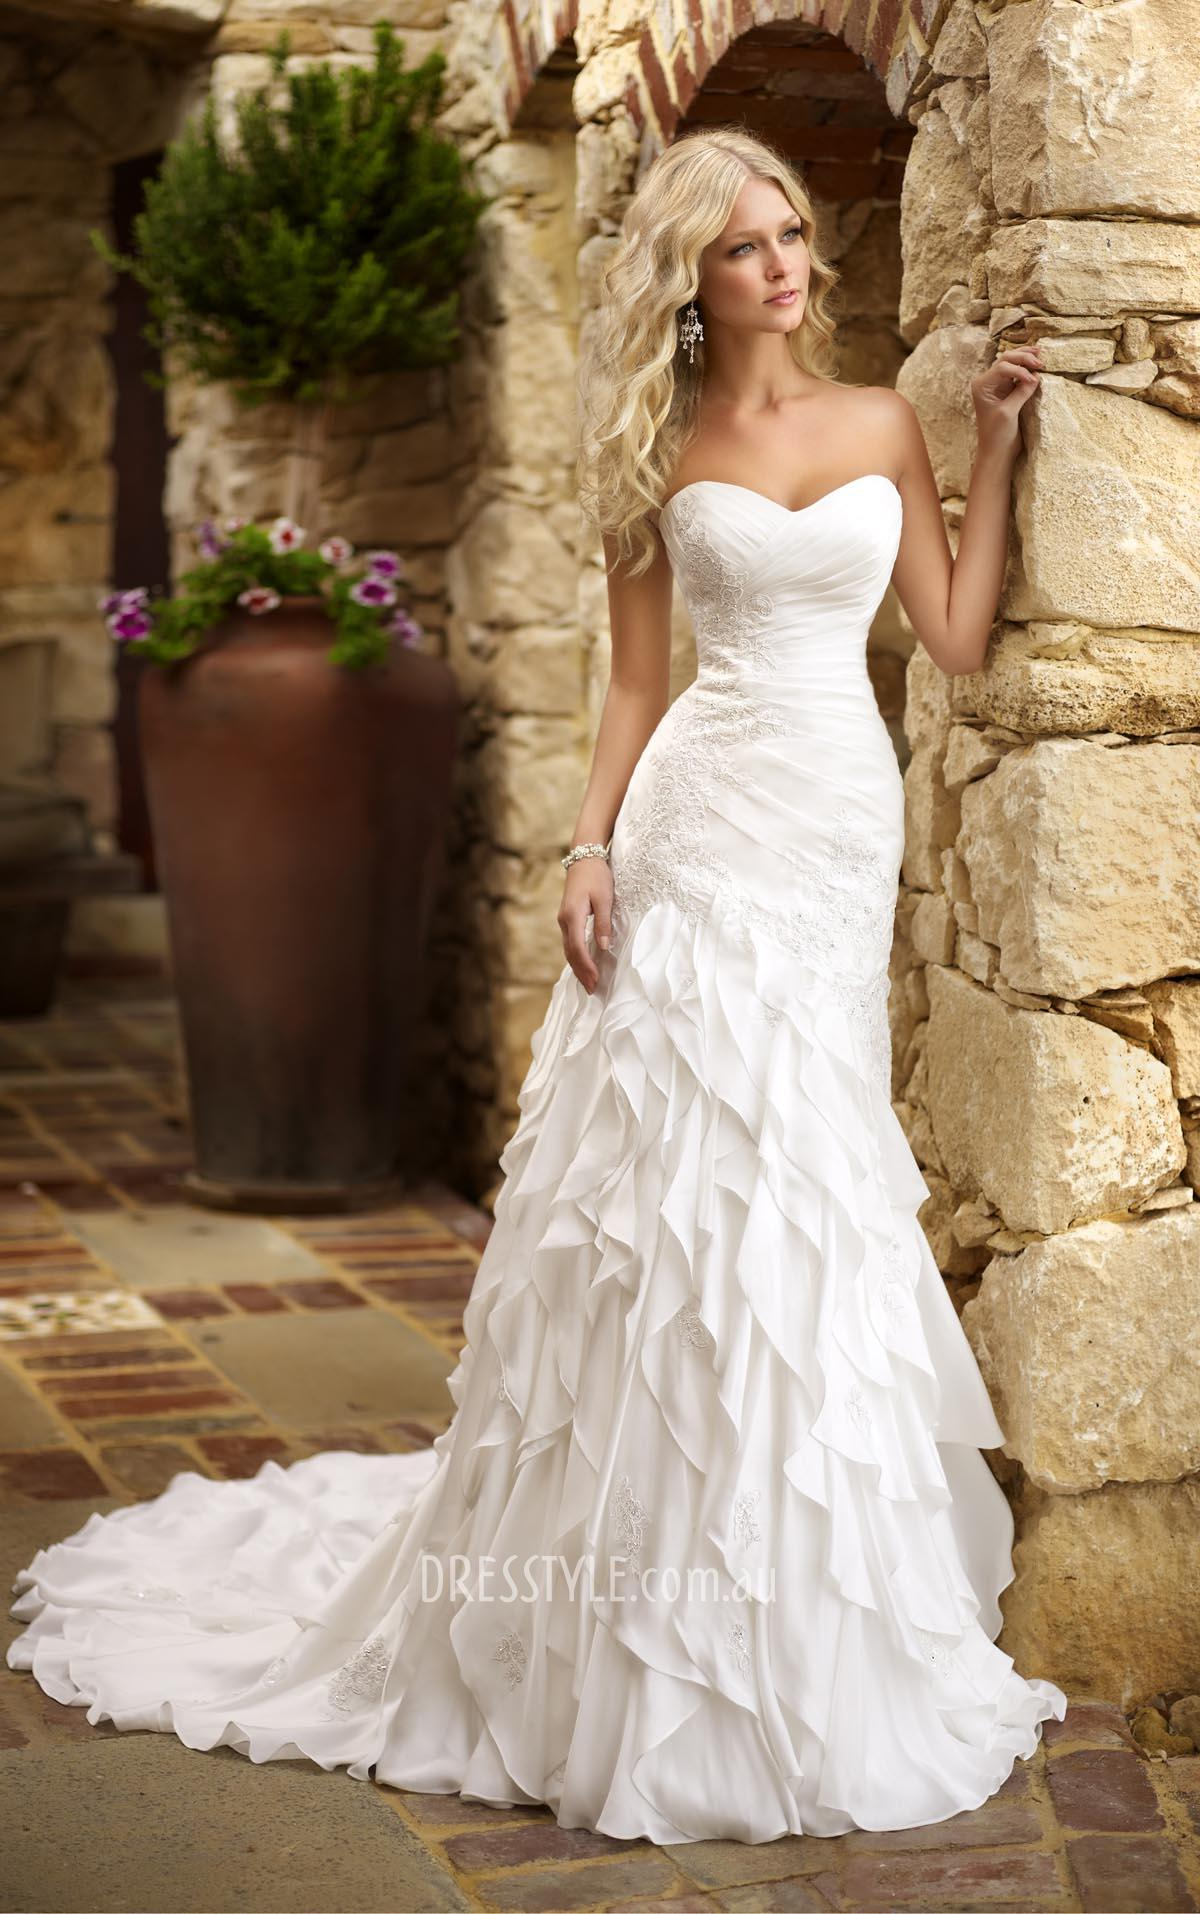 strapless sweetheart wedding dresses sweetheart wedding dresses wedding dresses dry cleaning 67